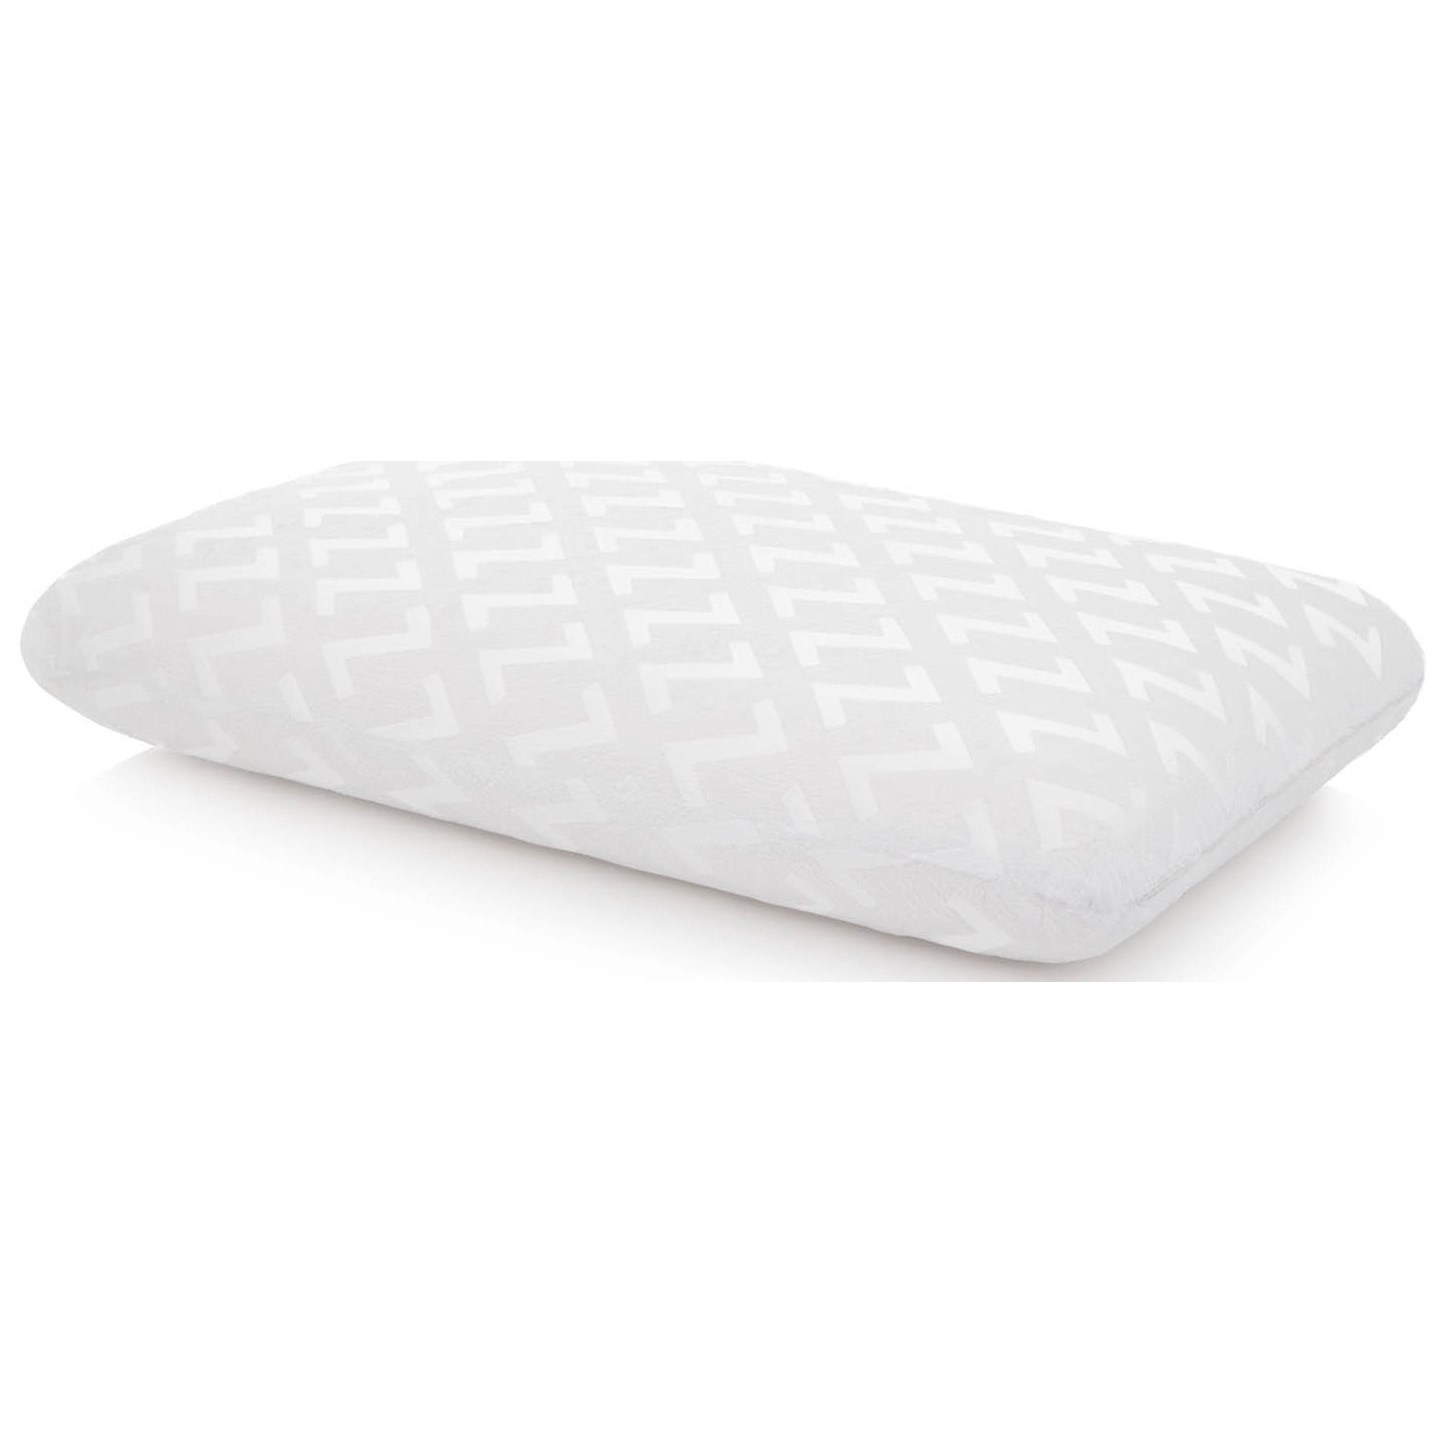 Malouf Latex King Latex Pillow - Item Number: ZZKKMPDULX